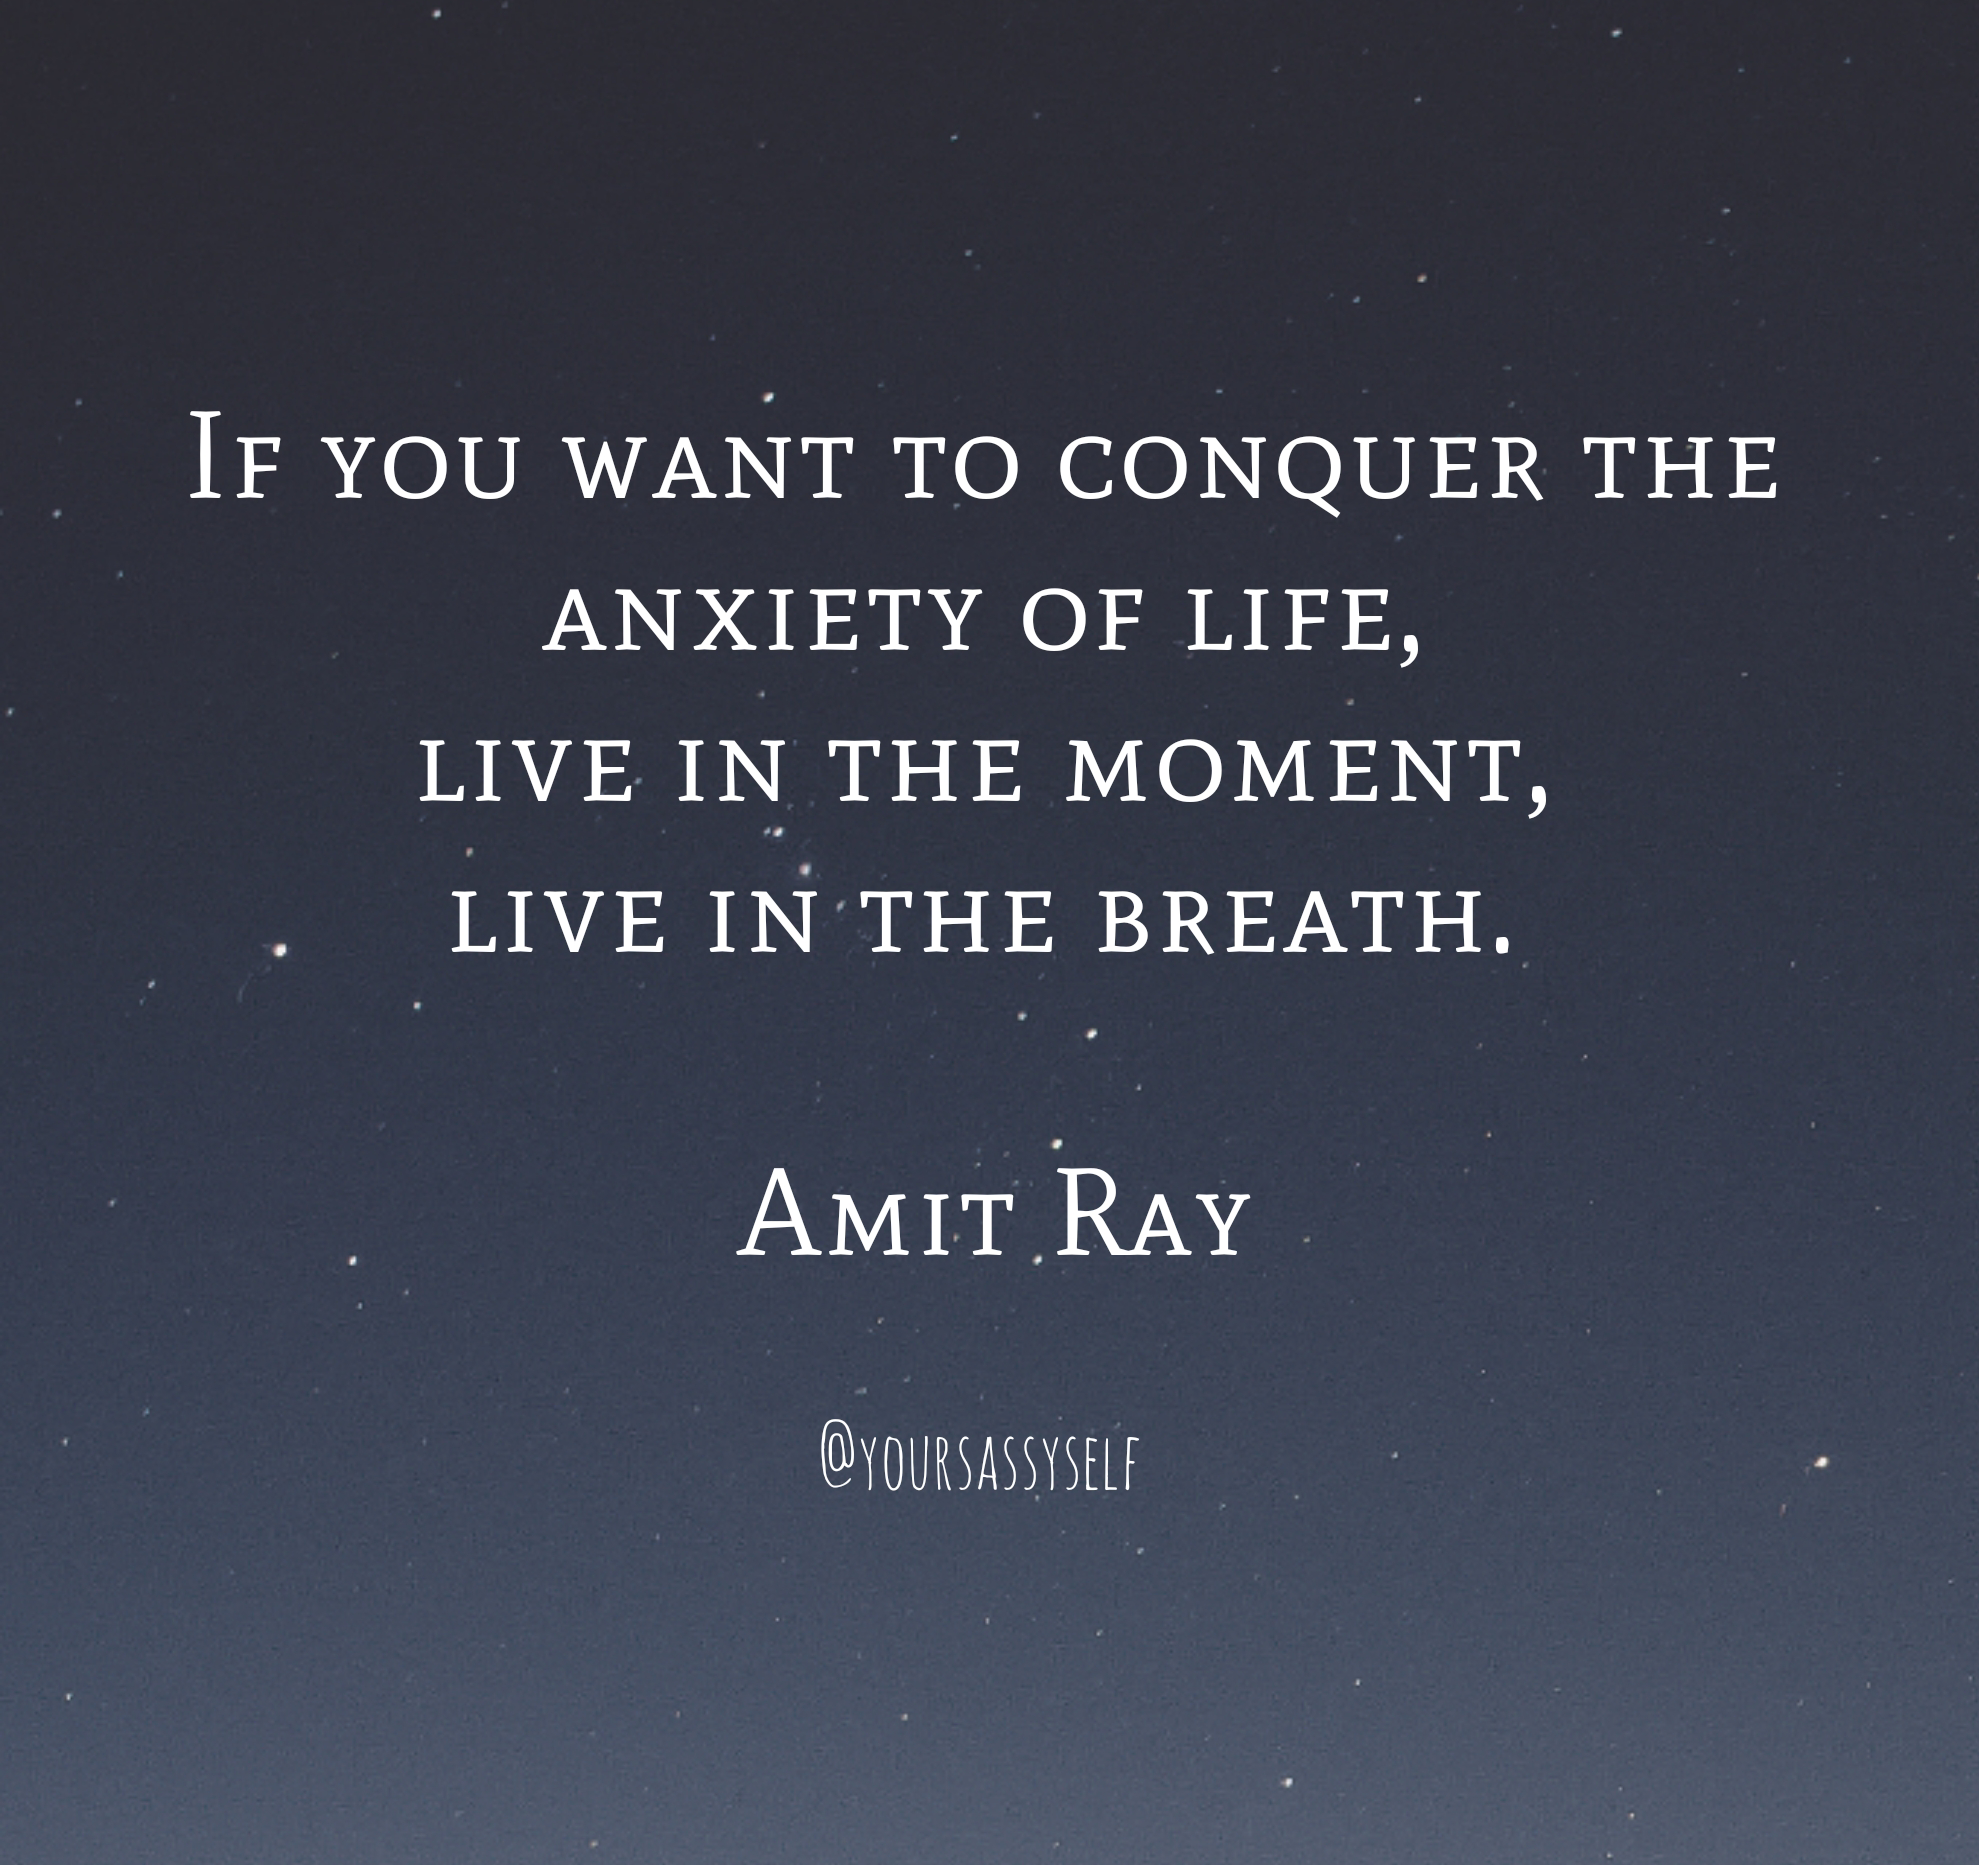 If you want to conquer the anxiety of life, live in the moment, live in the breath - Amit Ray - yoursassyself.com.png